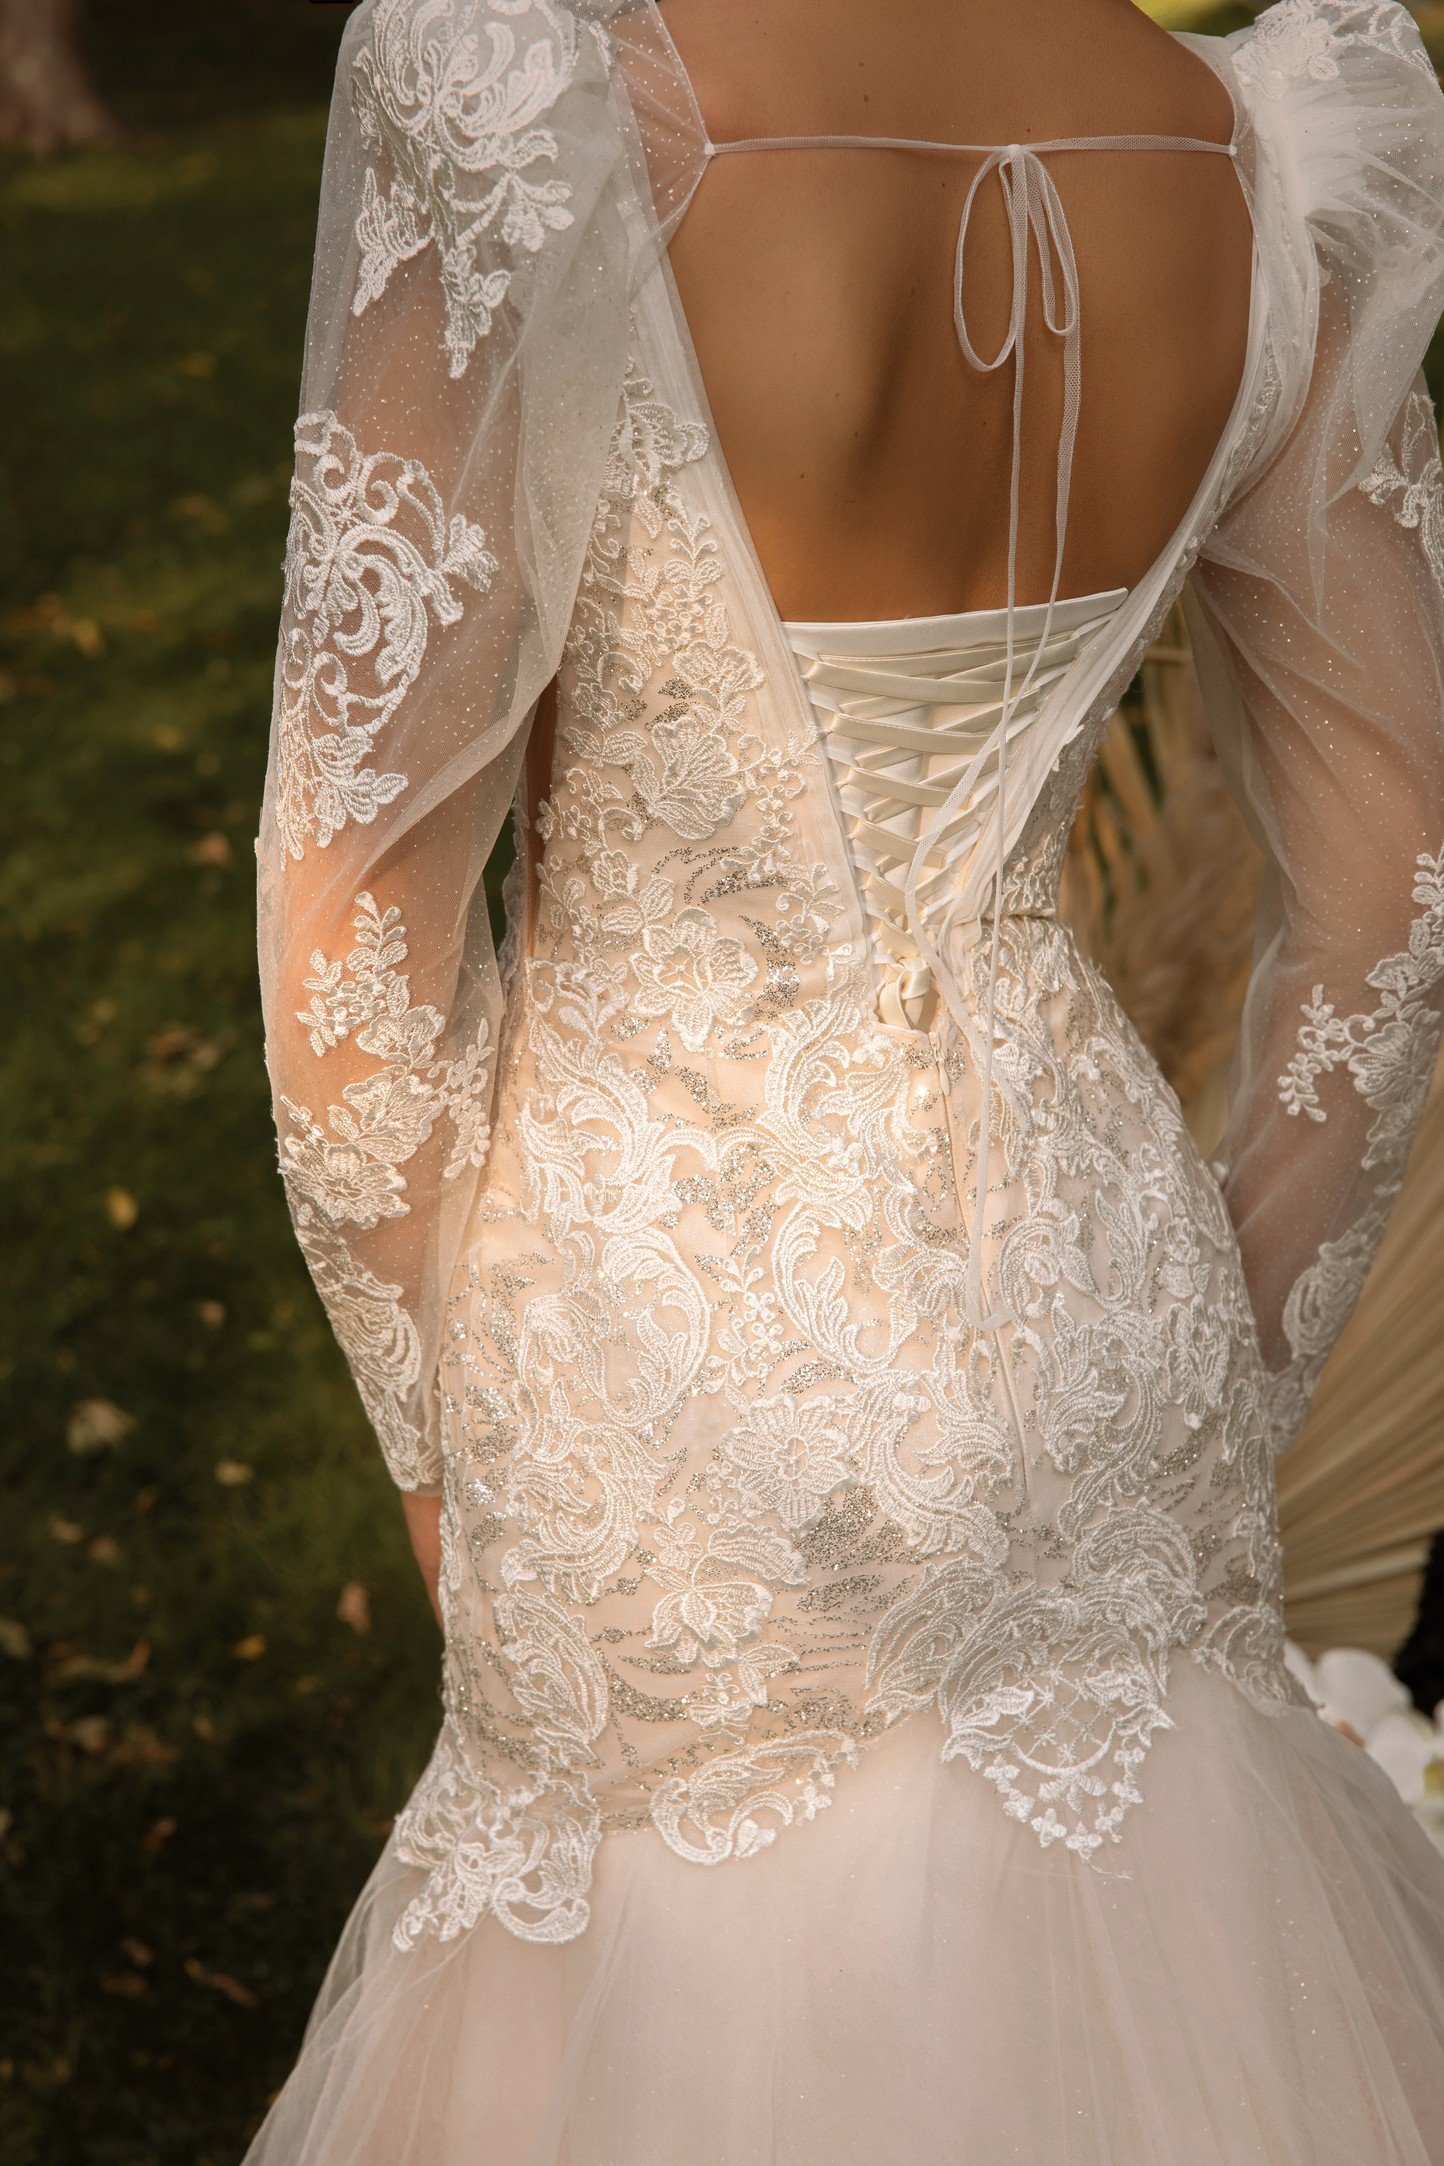 3d floral lace wedding dress with sleeves_3